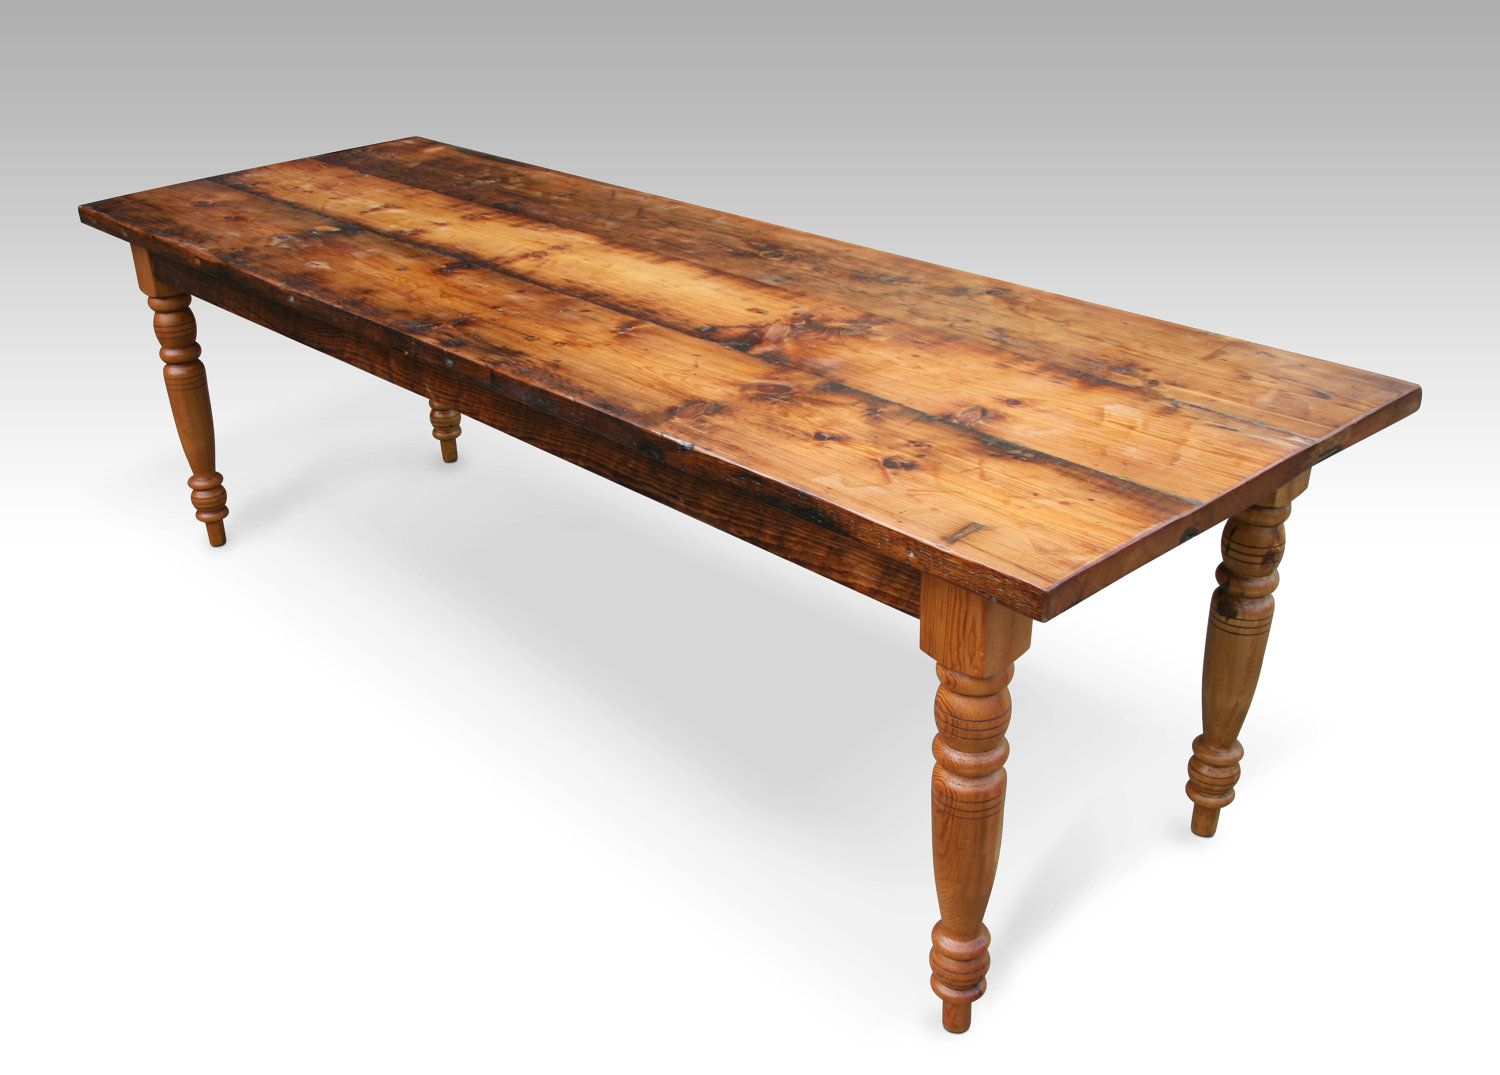 Reclaimed Wood Farmhouse Dining Table Turned Legs Recycled